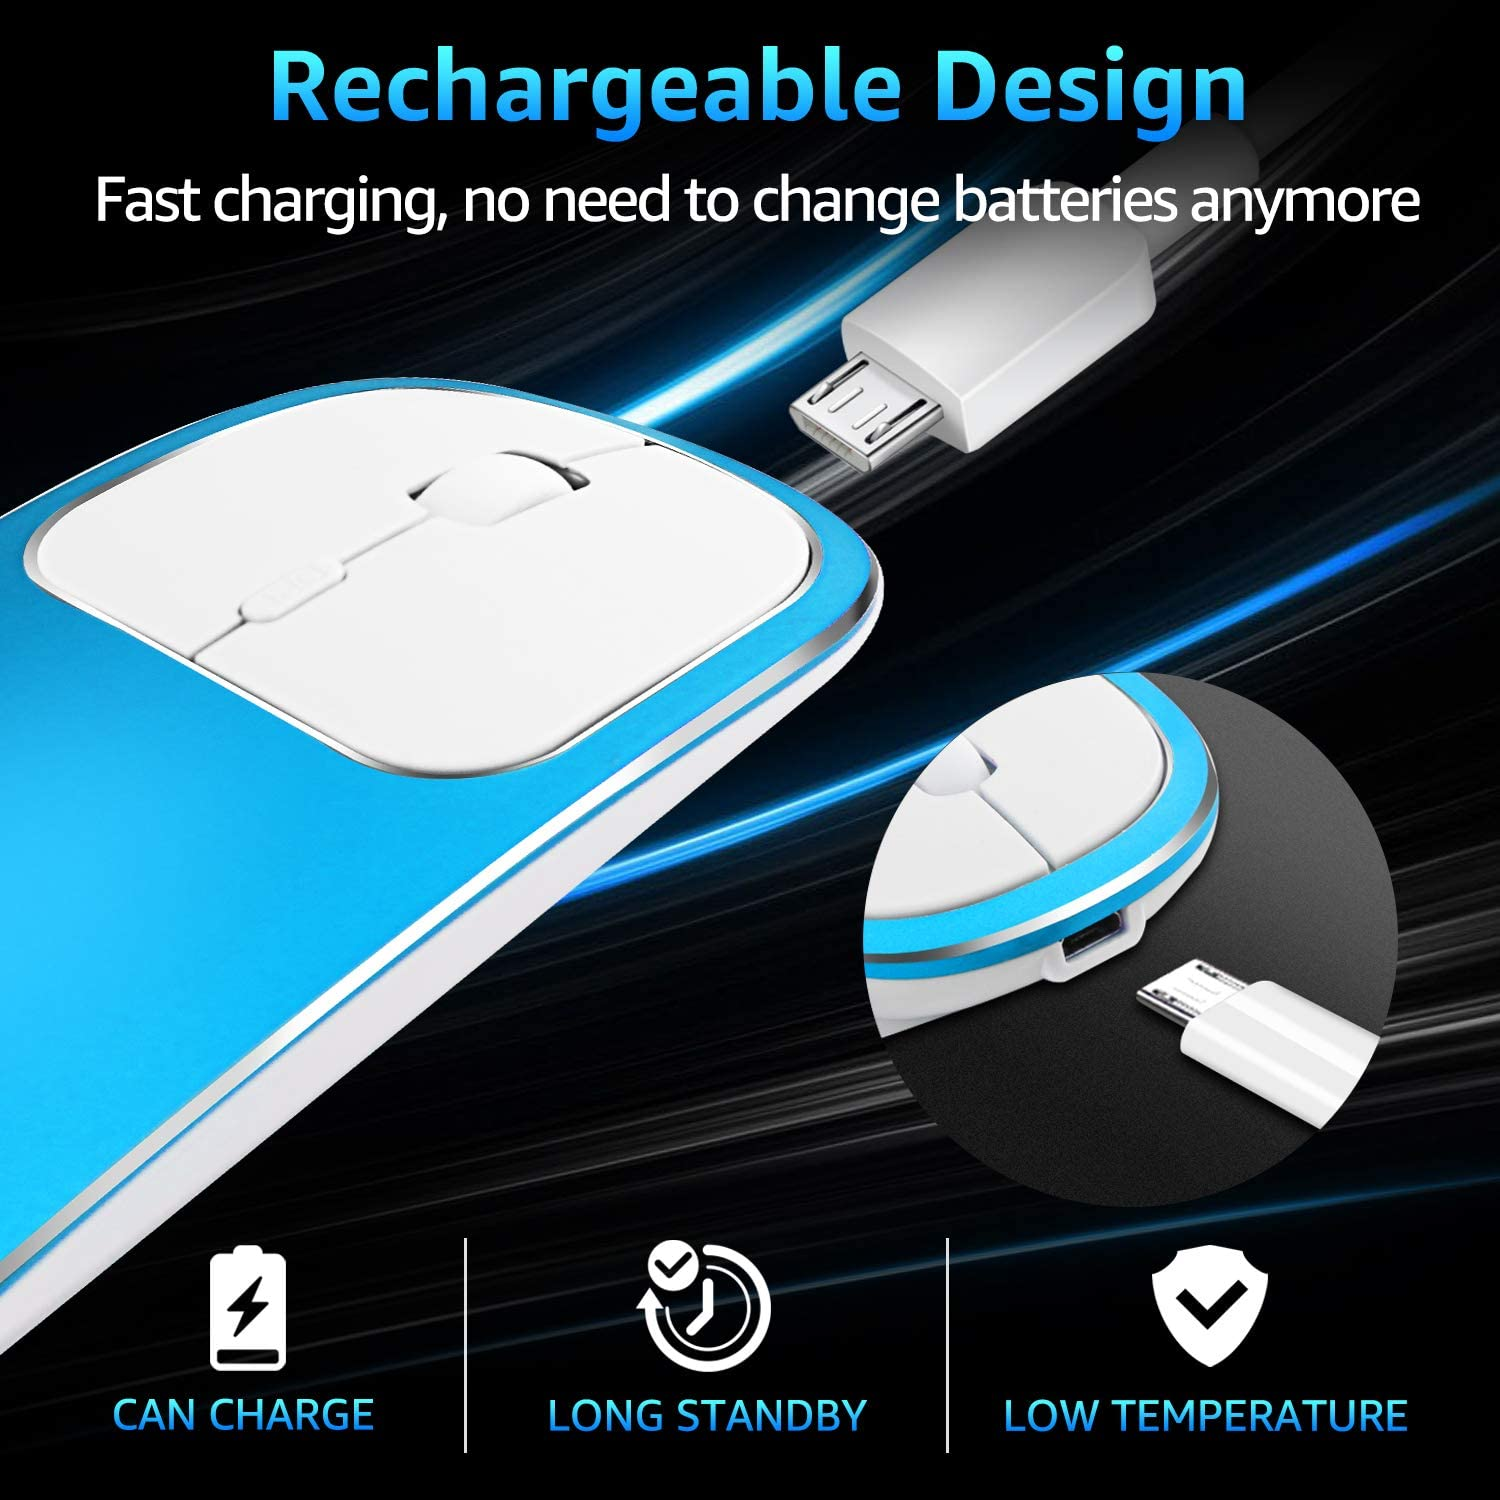 PC Notebook Rechargeable Wireless Mouse,2.4GHz and Bluetooth Metal Noiseless Silent Click Dual Mode Wireless Optical Mice with USB Receiver,Suitable for Mac Blue Laptops,Computer